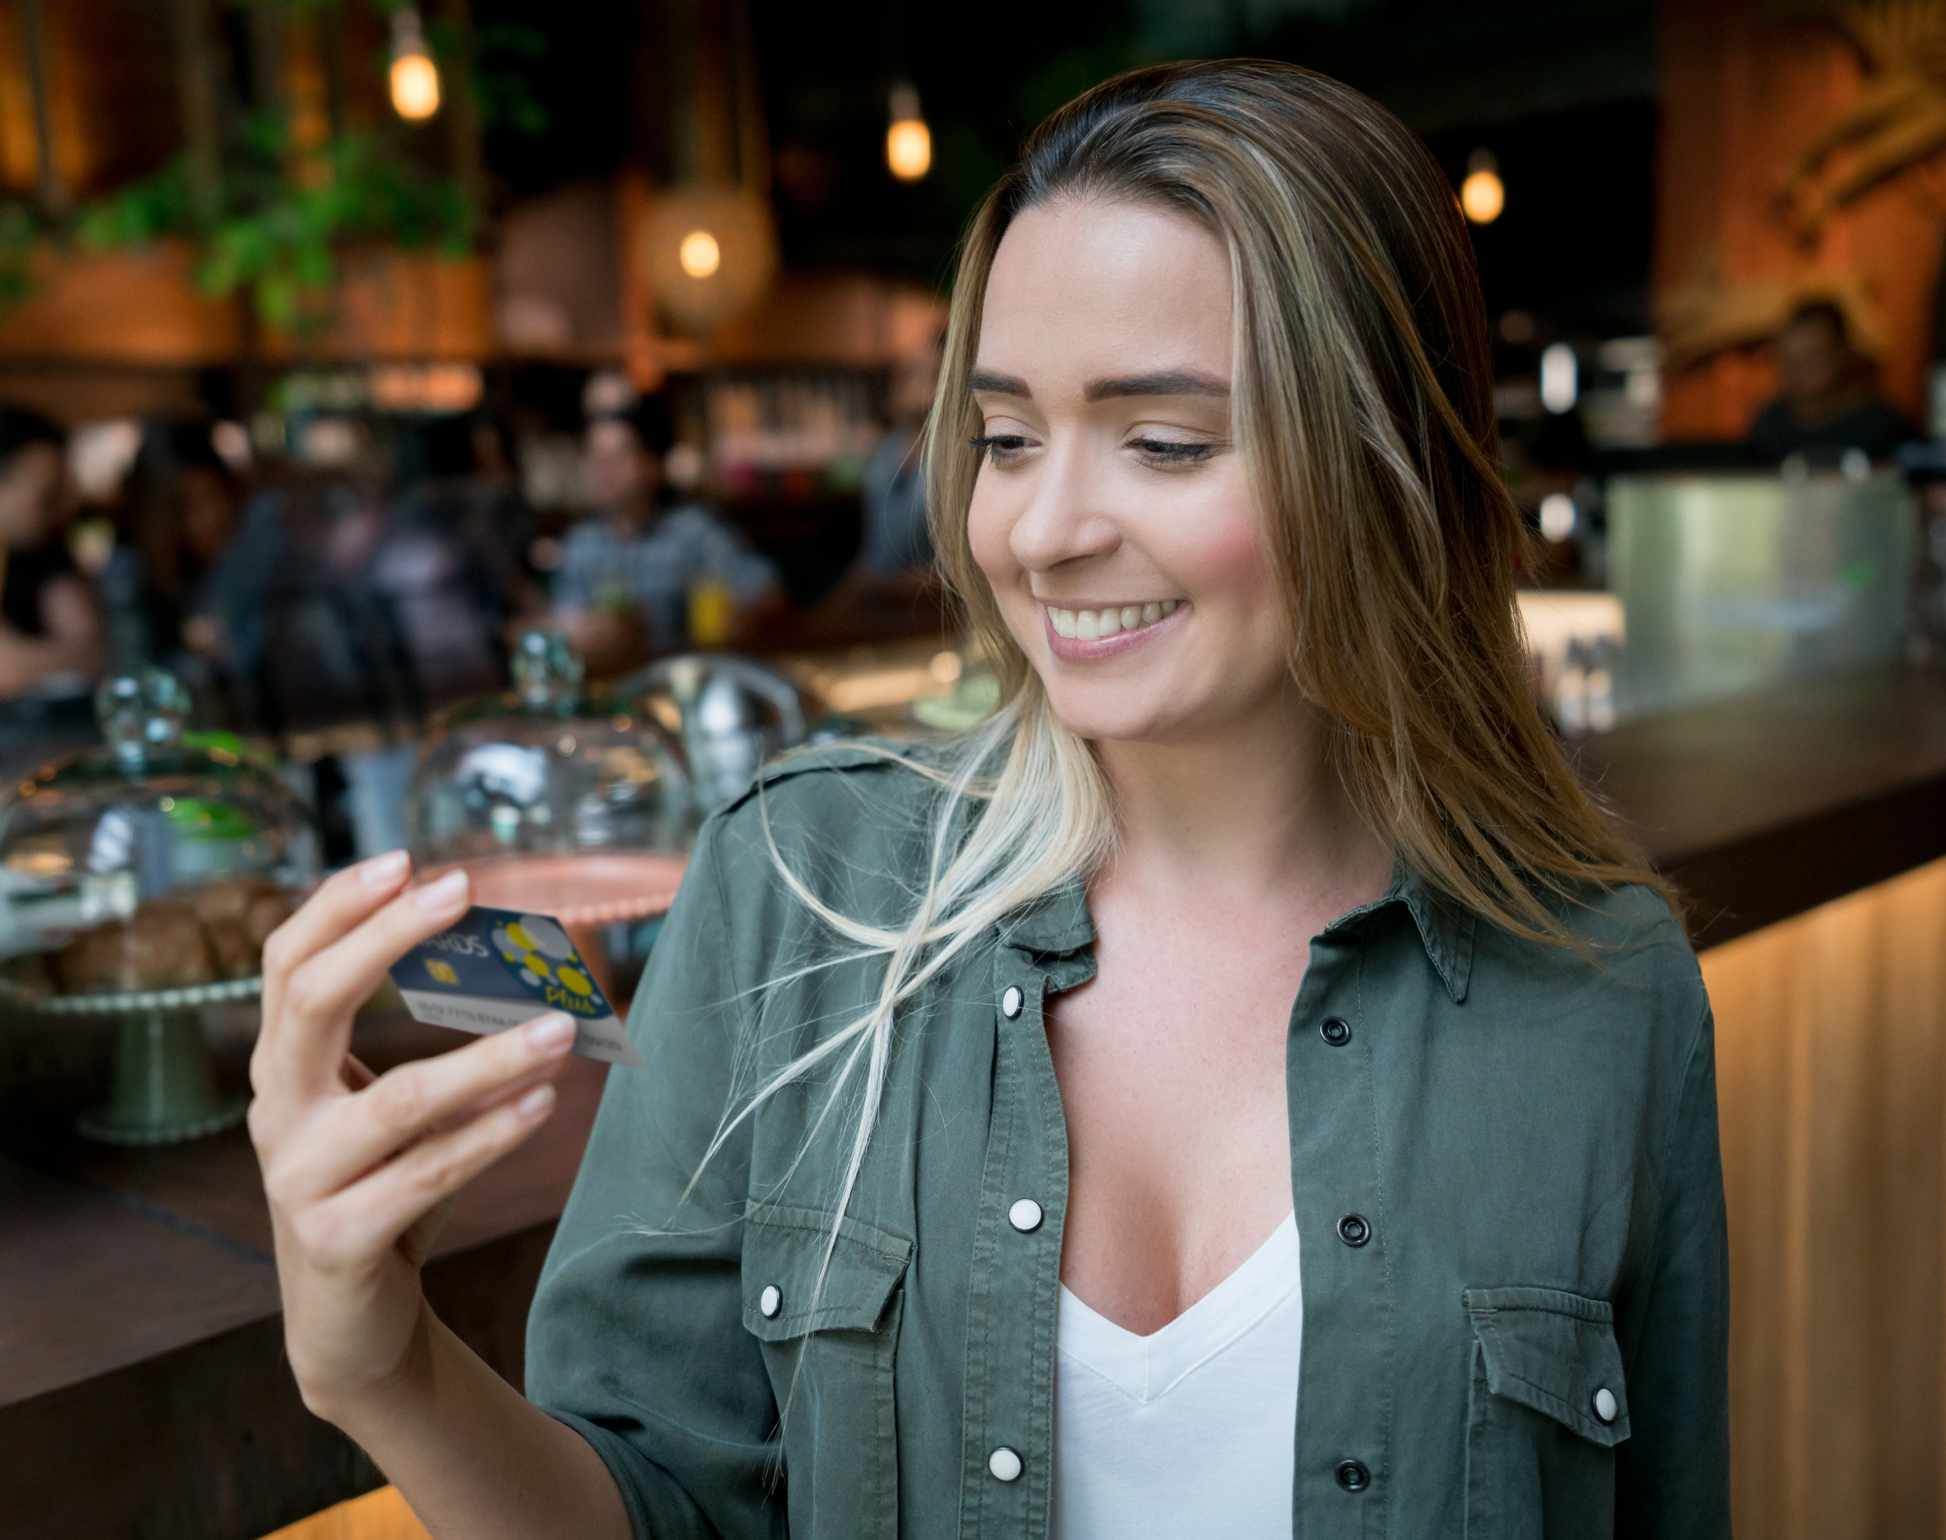 Woman holds up gift card in restaurant